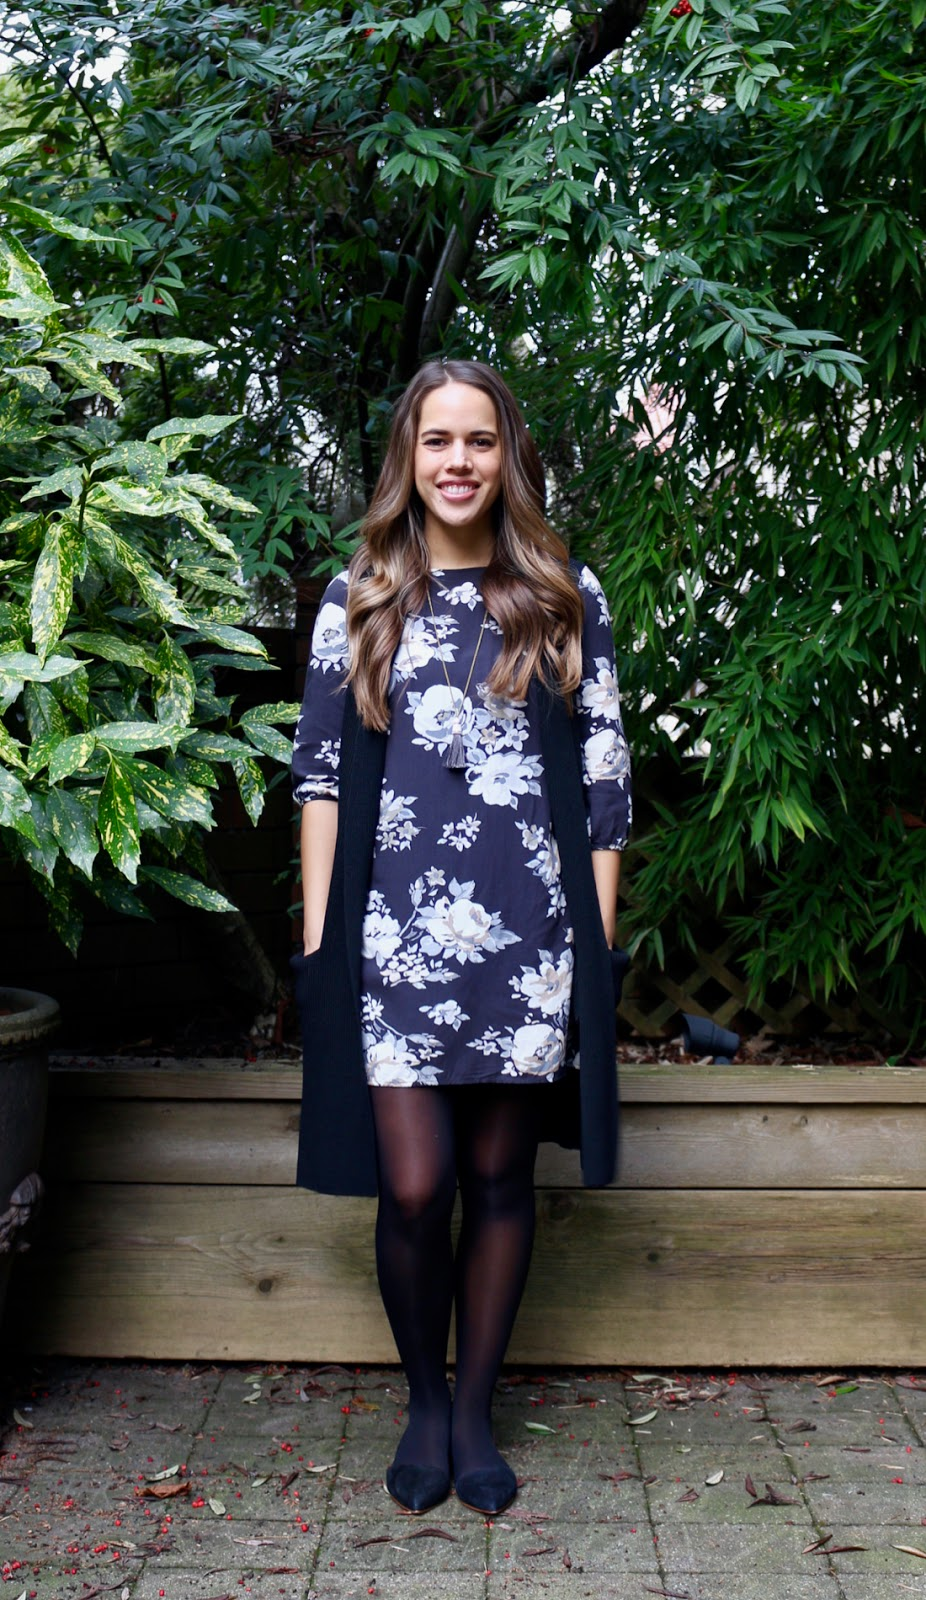 Jules in Flats - Floral Shift Dress with Long Sweater Vest (Aritzia Wilfred Dunkirk Olivie) (Business Casual Winter Workwear on a Budget)